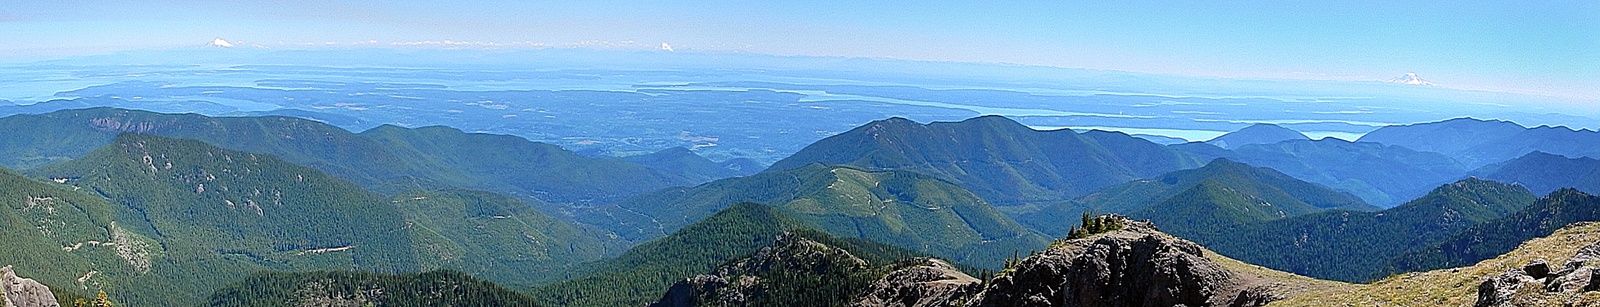 View of Mount Baker, Mount Glacier and Mount Rainier from the top of Mount Townsend